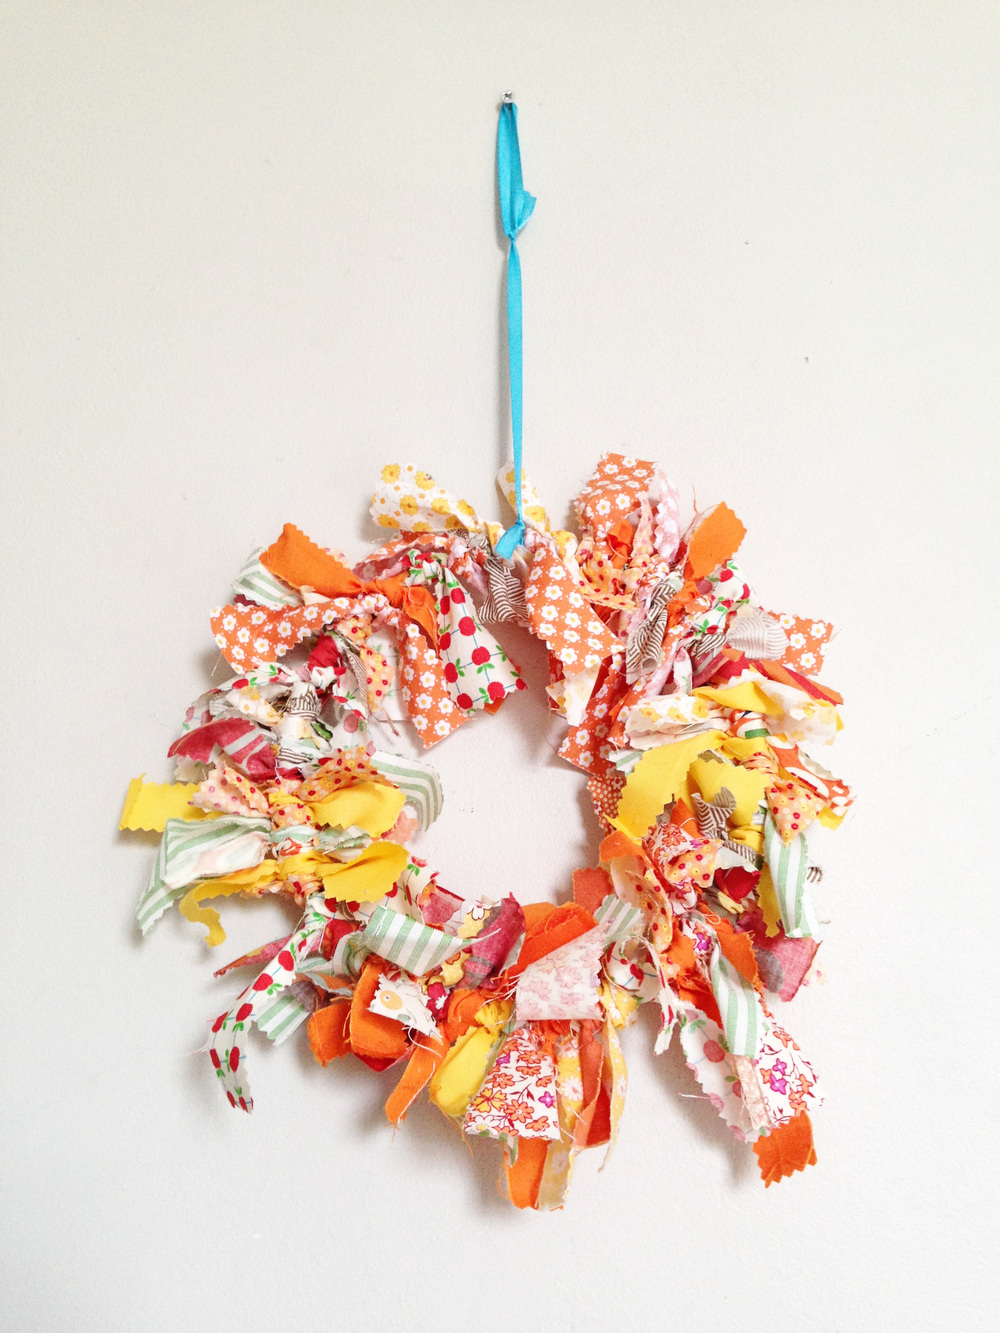 autumnwreath 006.jpg